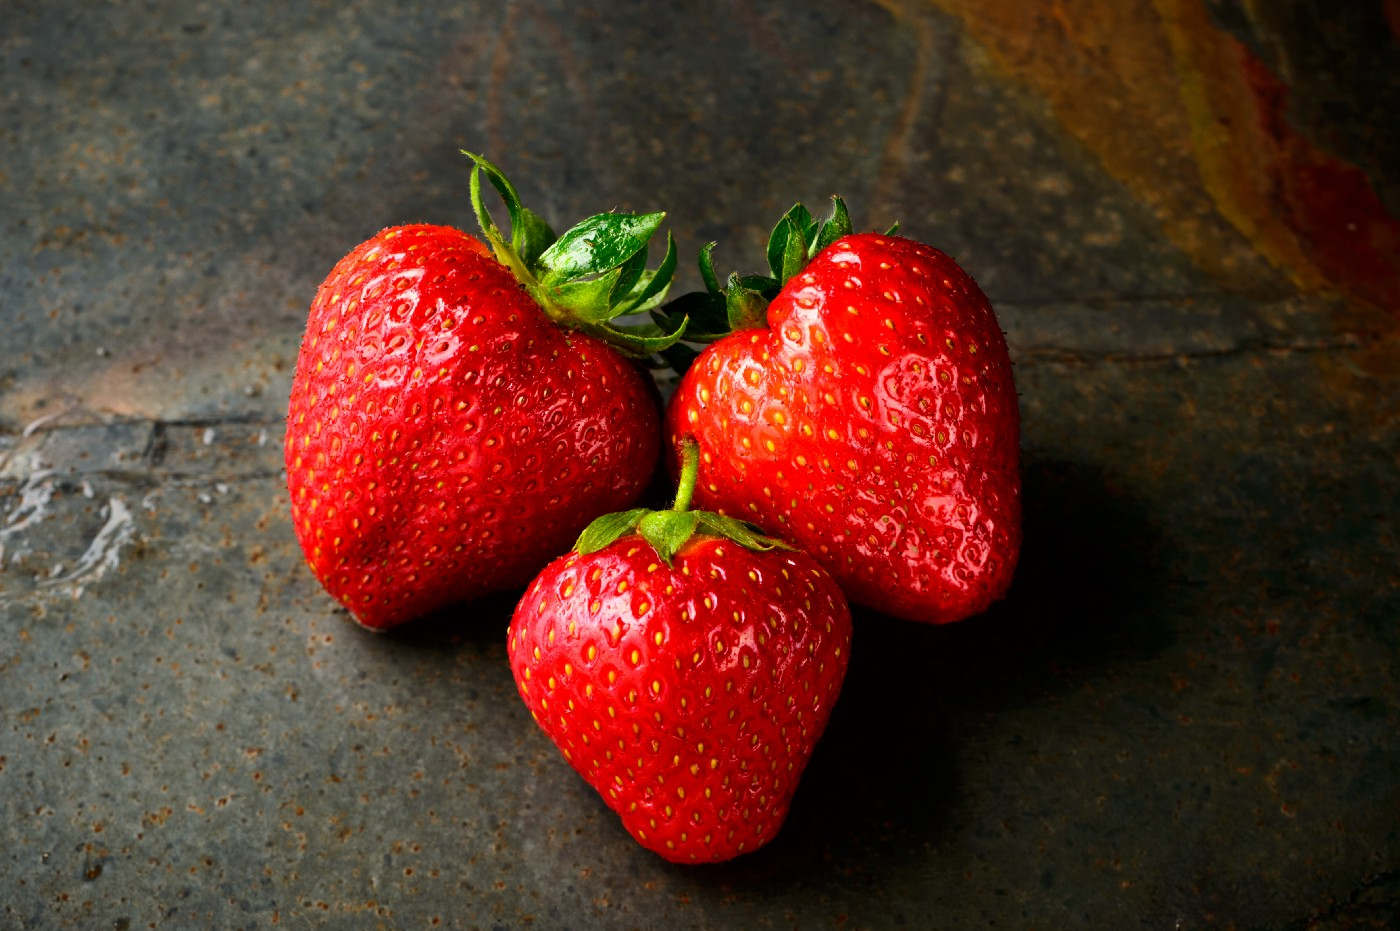 Three strawberries atop a table.